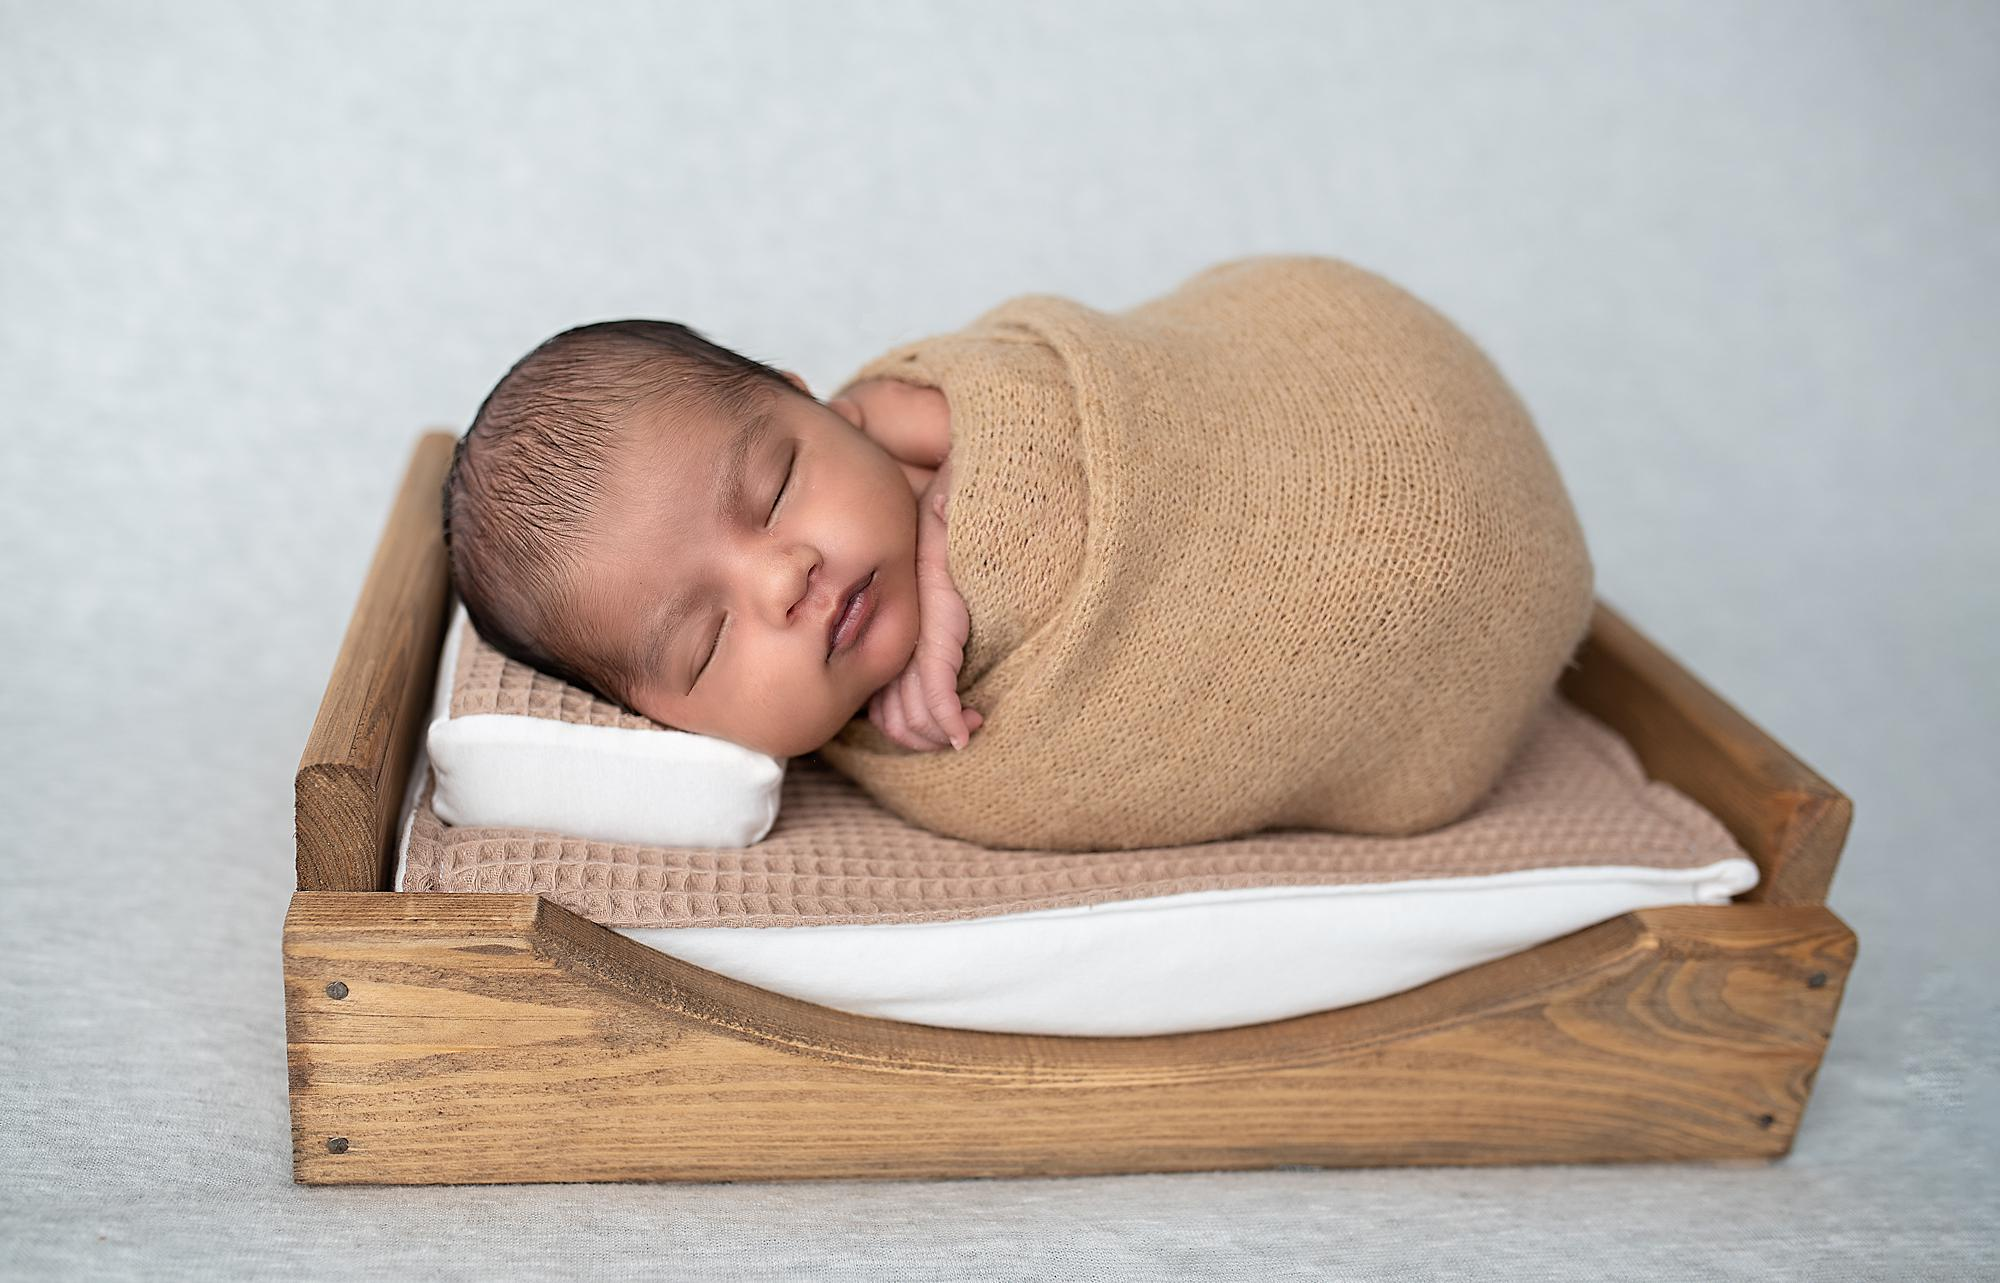 A newborn baby sleeping in a wooden bed